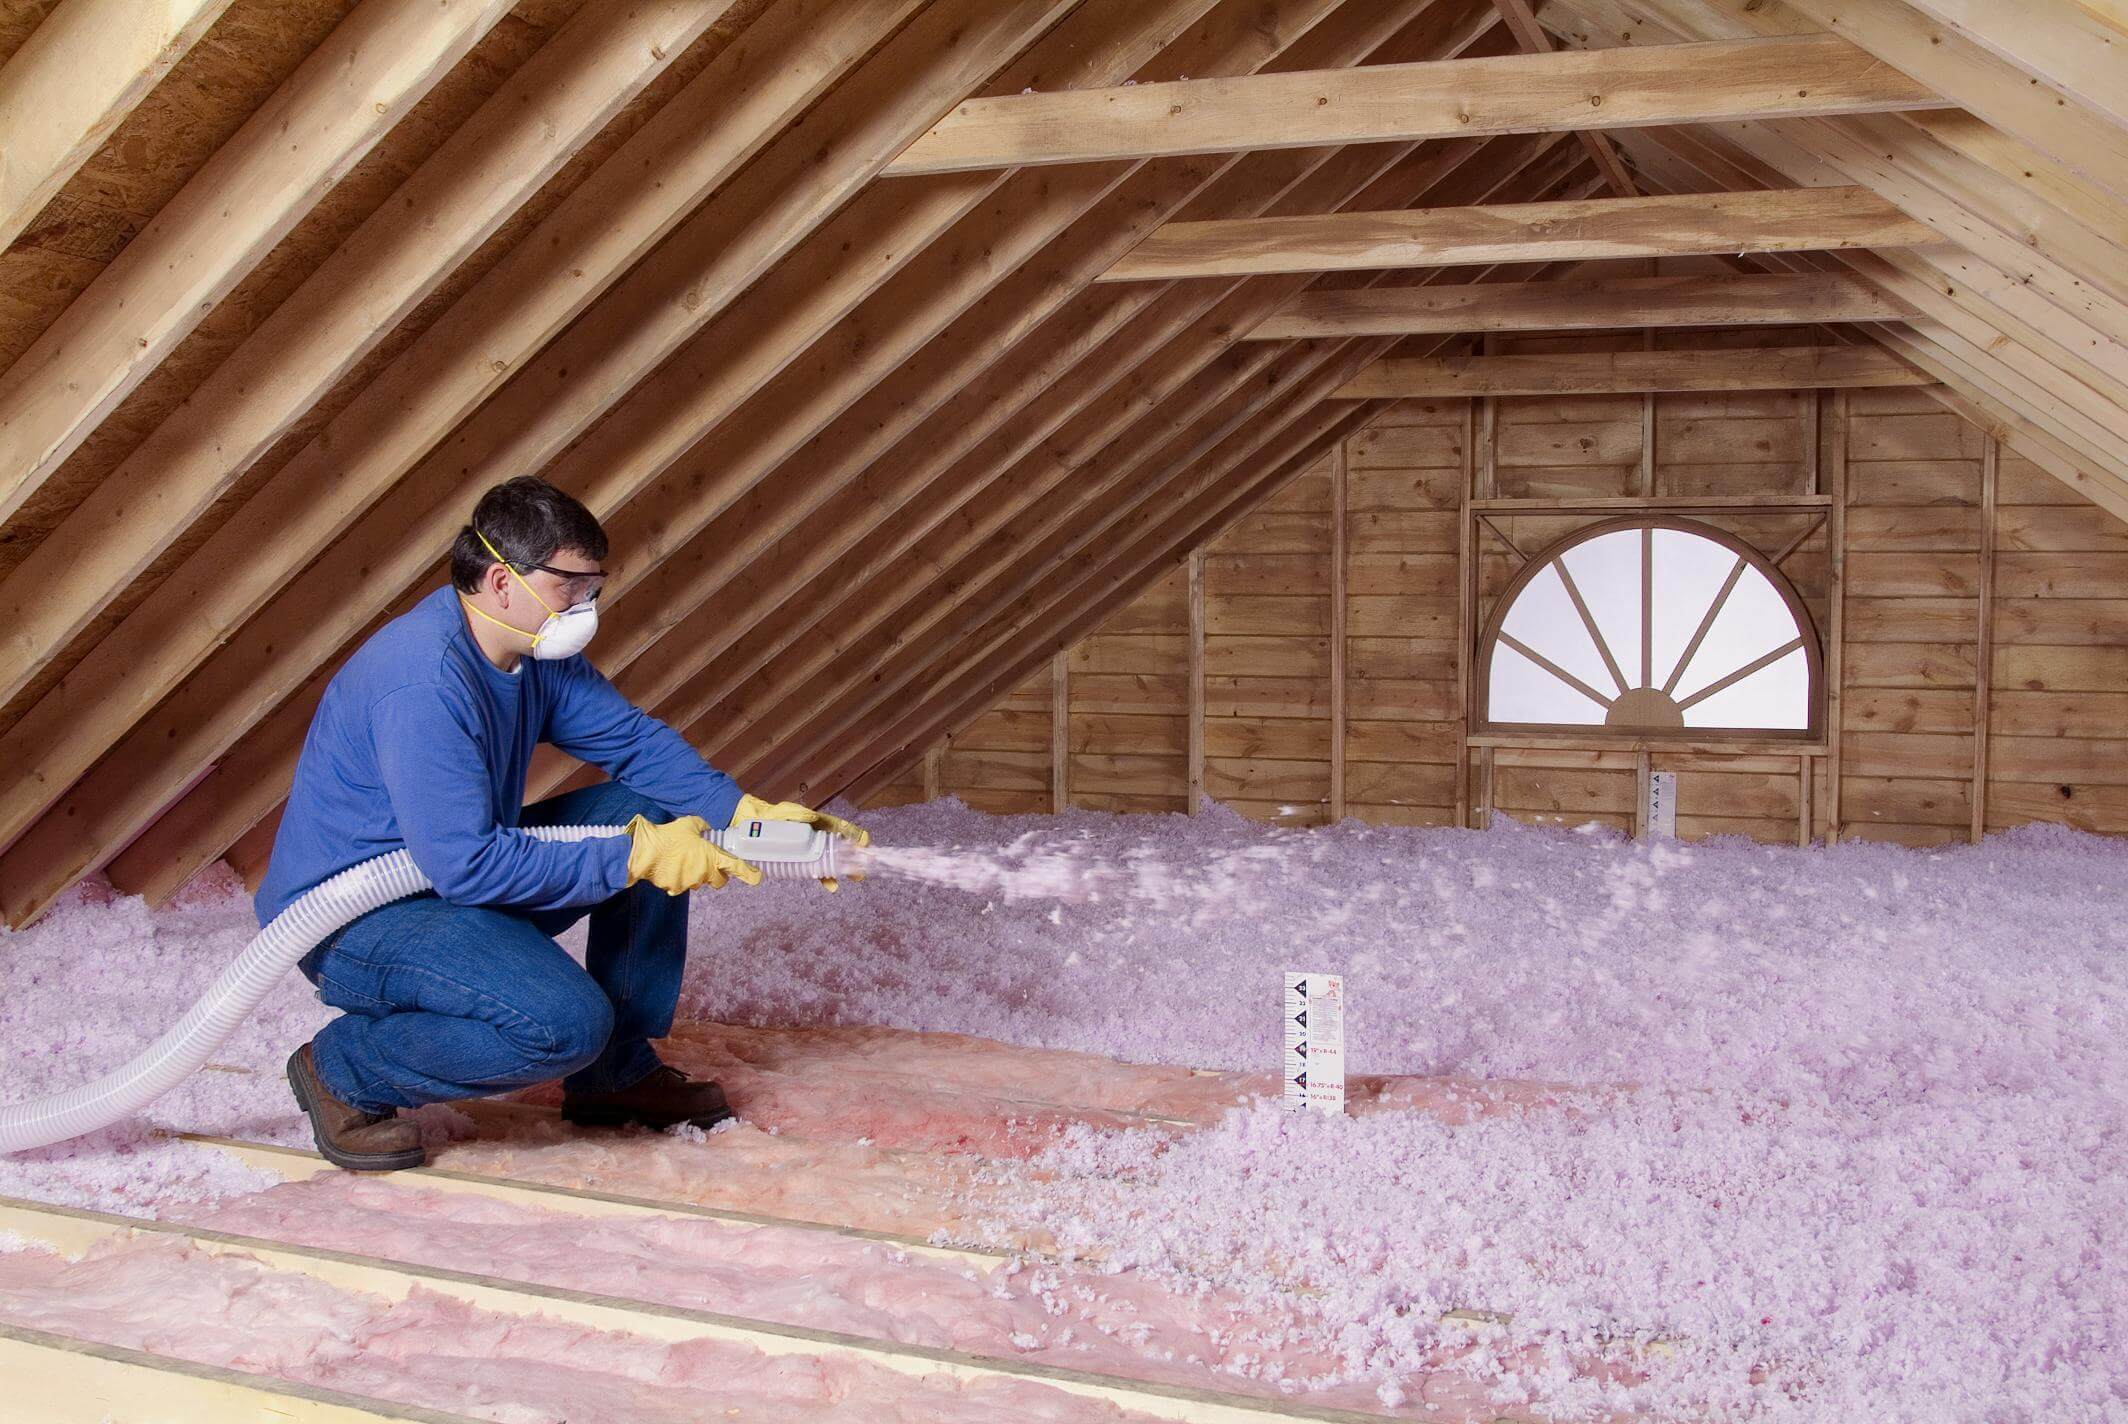 Contractor-Blowing-Insulation-in-an-unfinished-attic-1-1